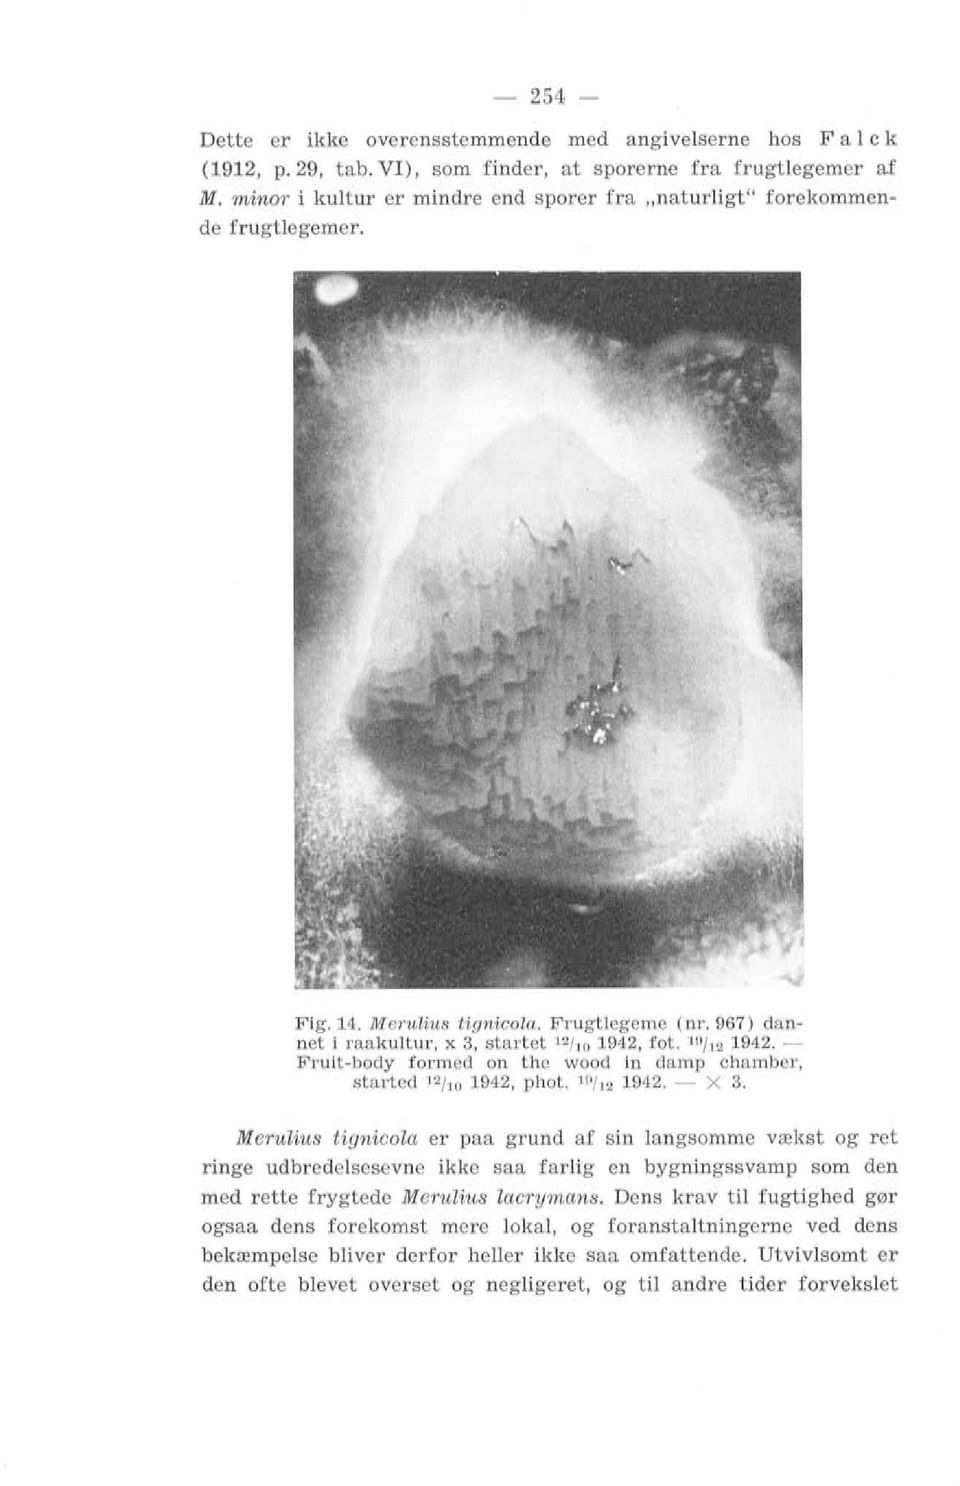 Fruit-body formed on the wood in damp chamber, start ed 12 / 10 1942, phot. 19 1t2 1942. - X 3.